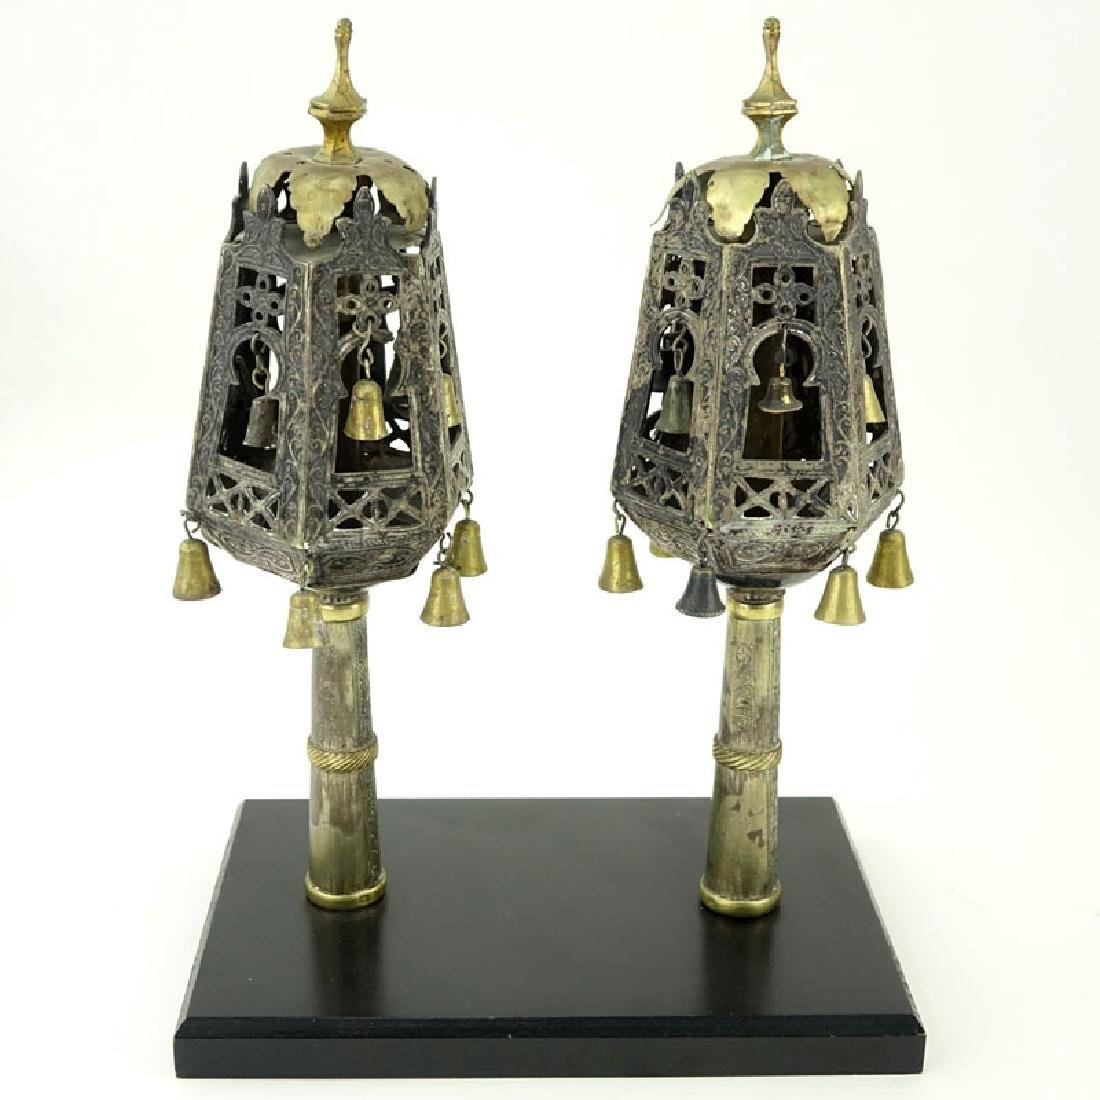 Pair of Late 18th or 19th Century Judaica Silver and